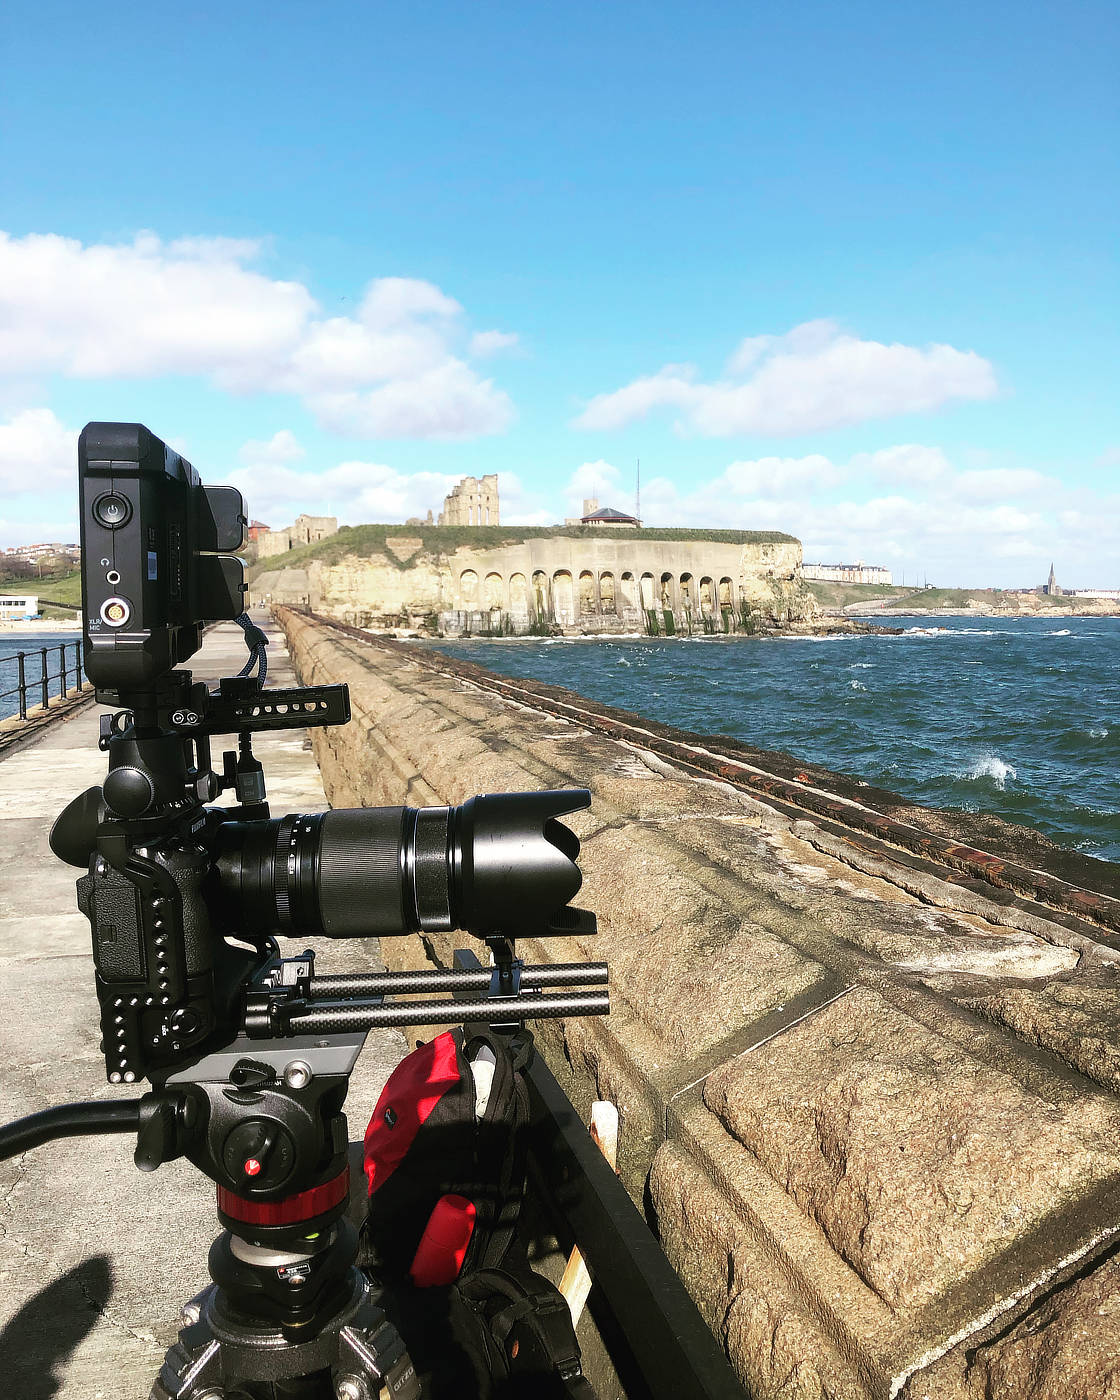 Filming rafting kittiwakes on the north side of Tynemouth Pier